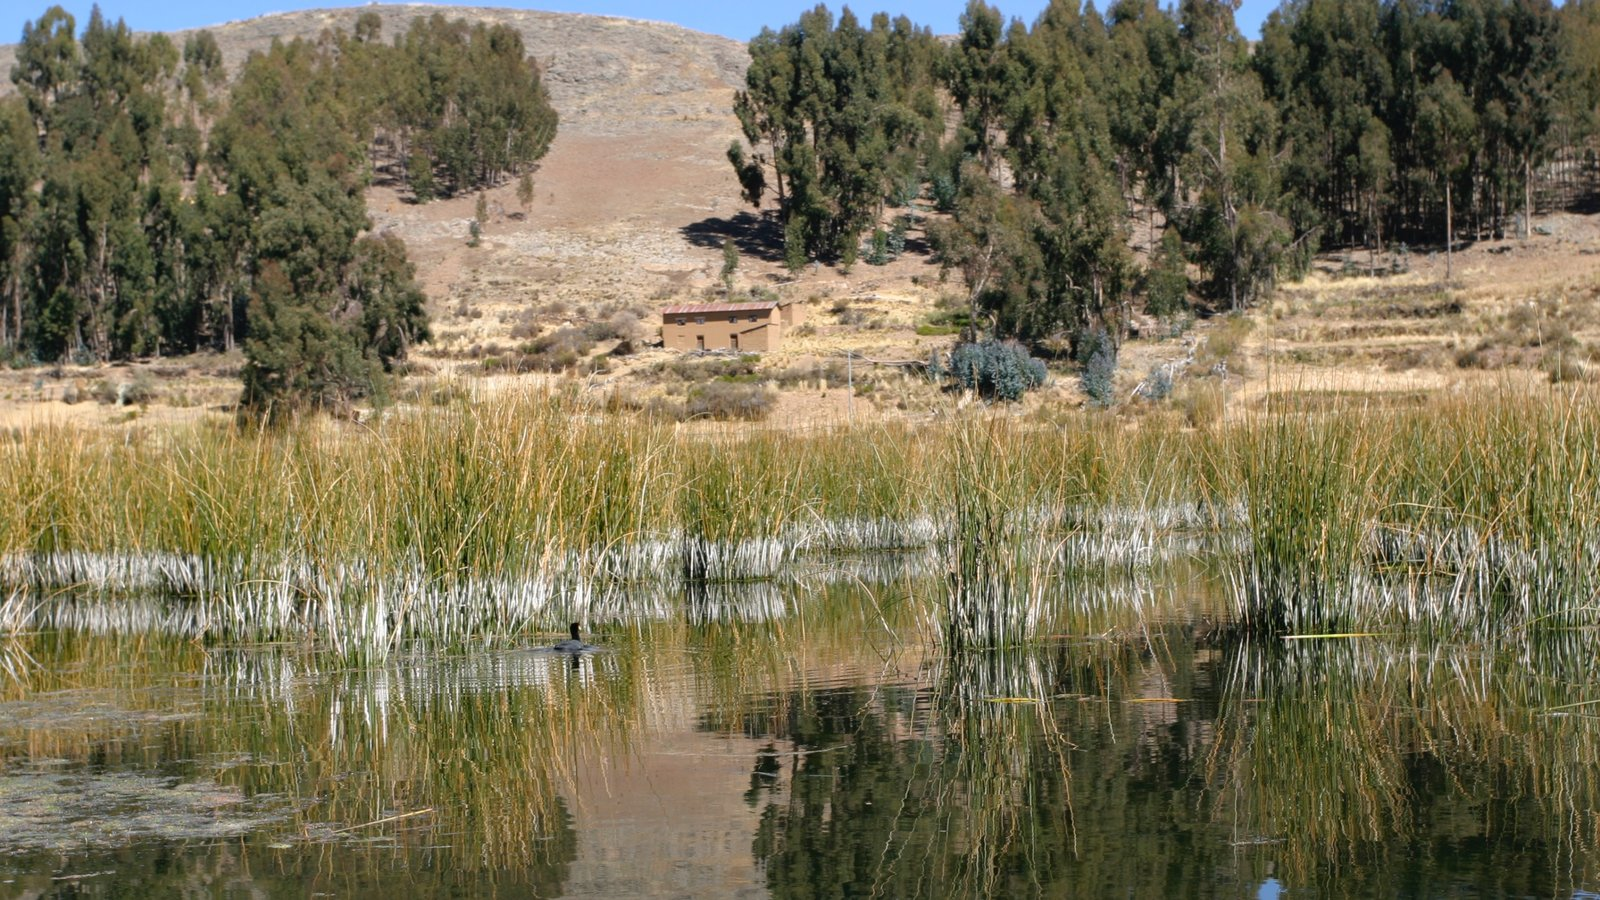 Lake Titicaca - Puno showing wetlands, tranquil scenes and a lake or waterhole